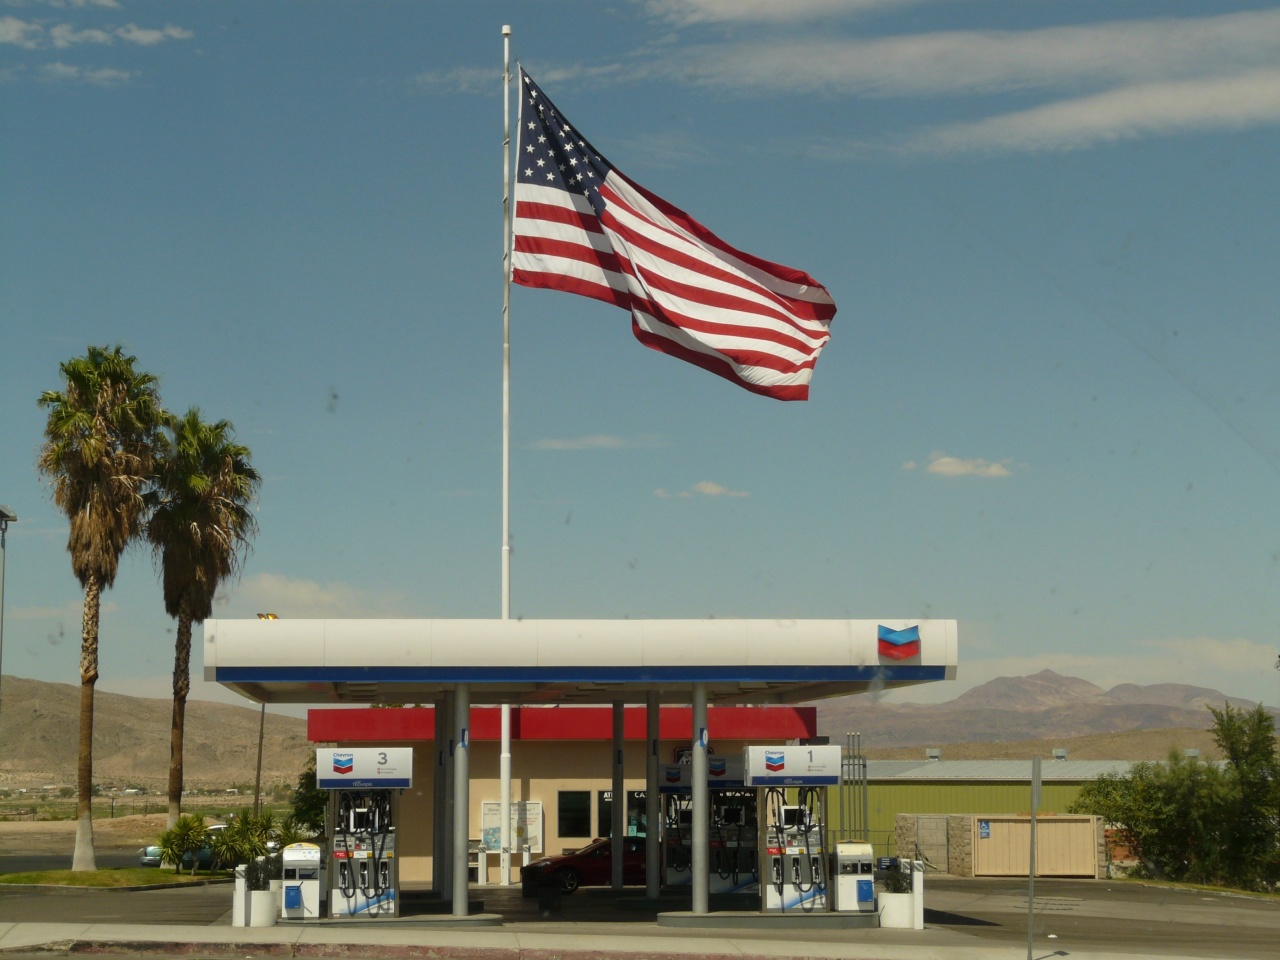 music-cloud-sky-building-advertising-flag-usa-america-american-flag-business-petrol-petrol-stations-refuel-filling-station-corporate-headquarters-1360503.jpg